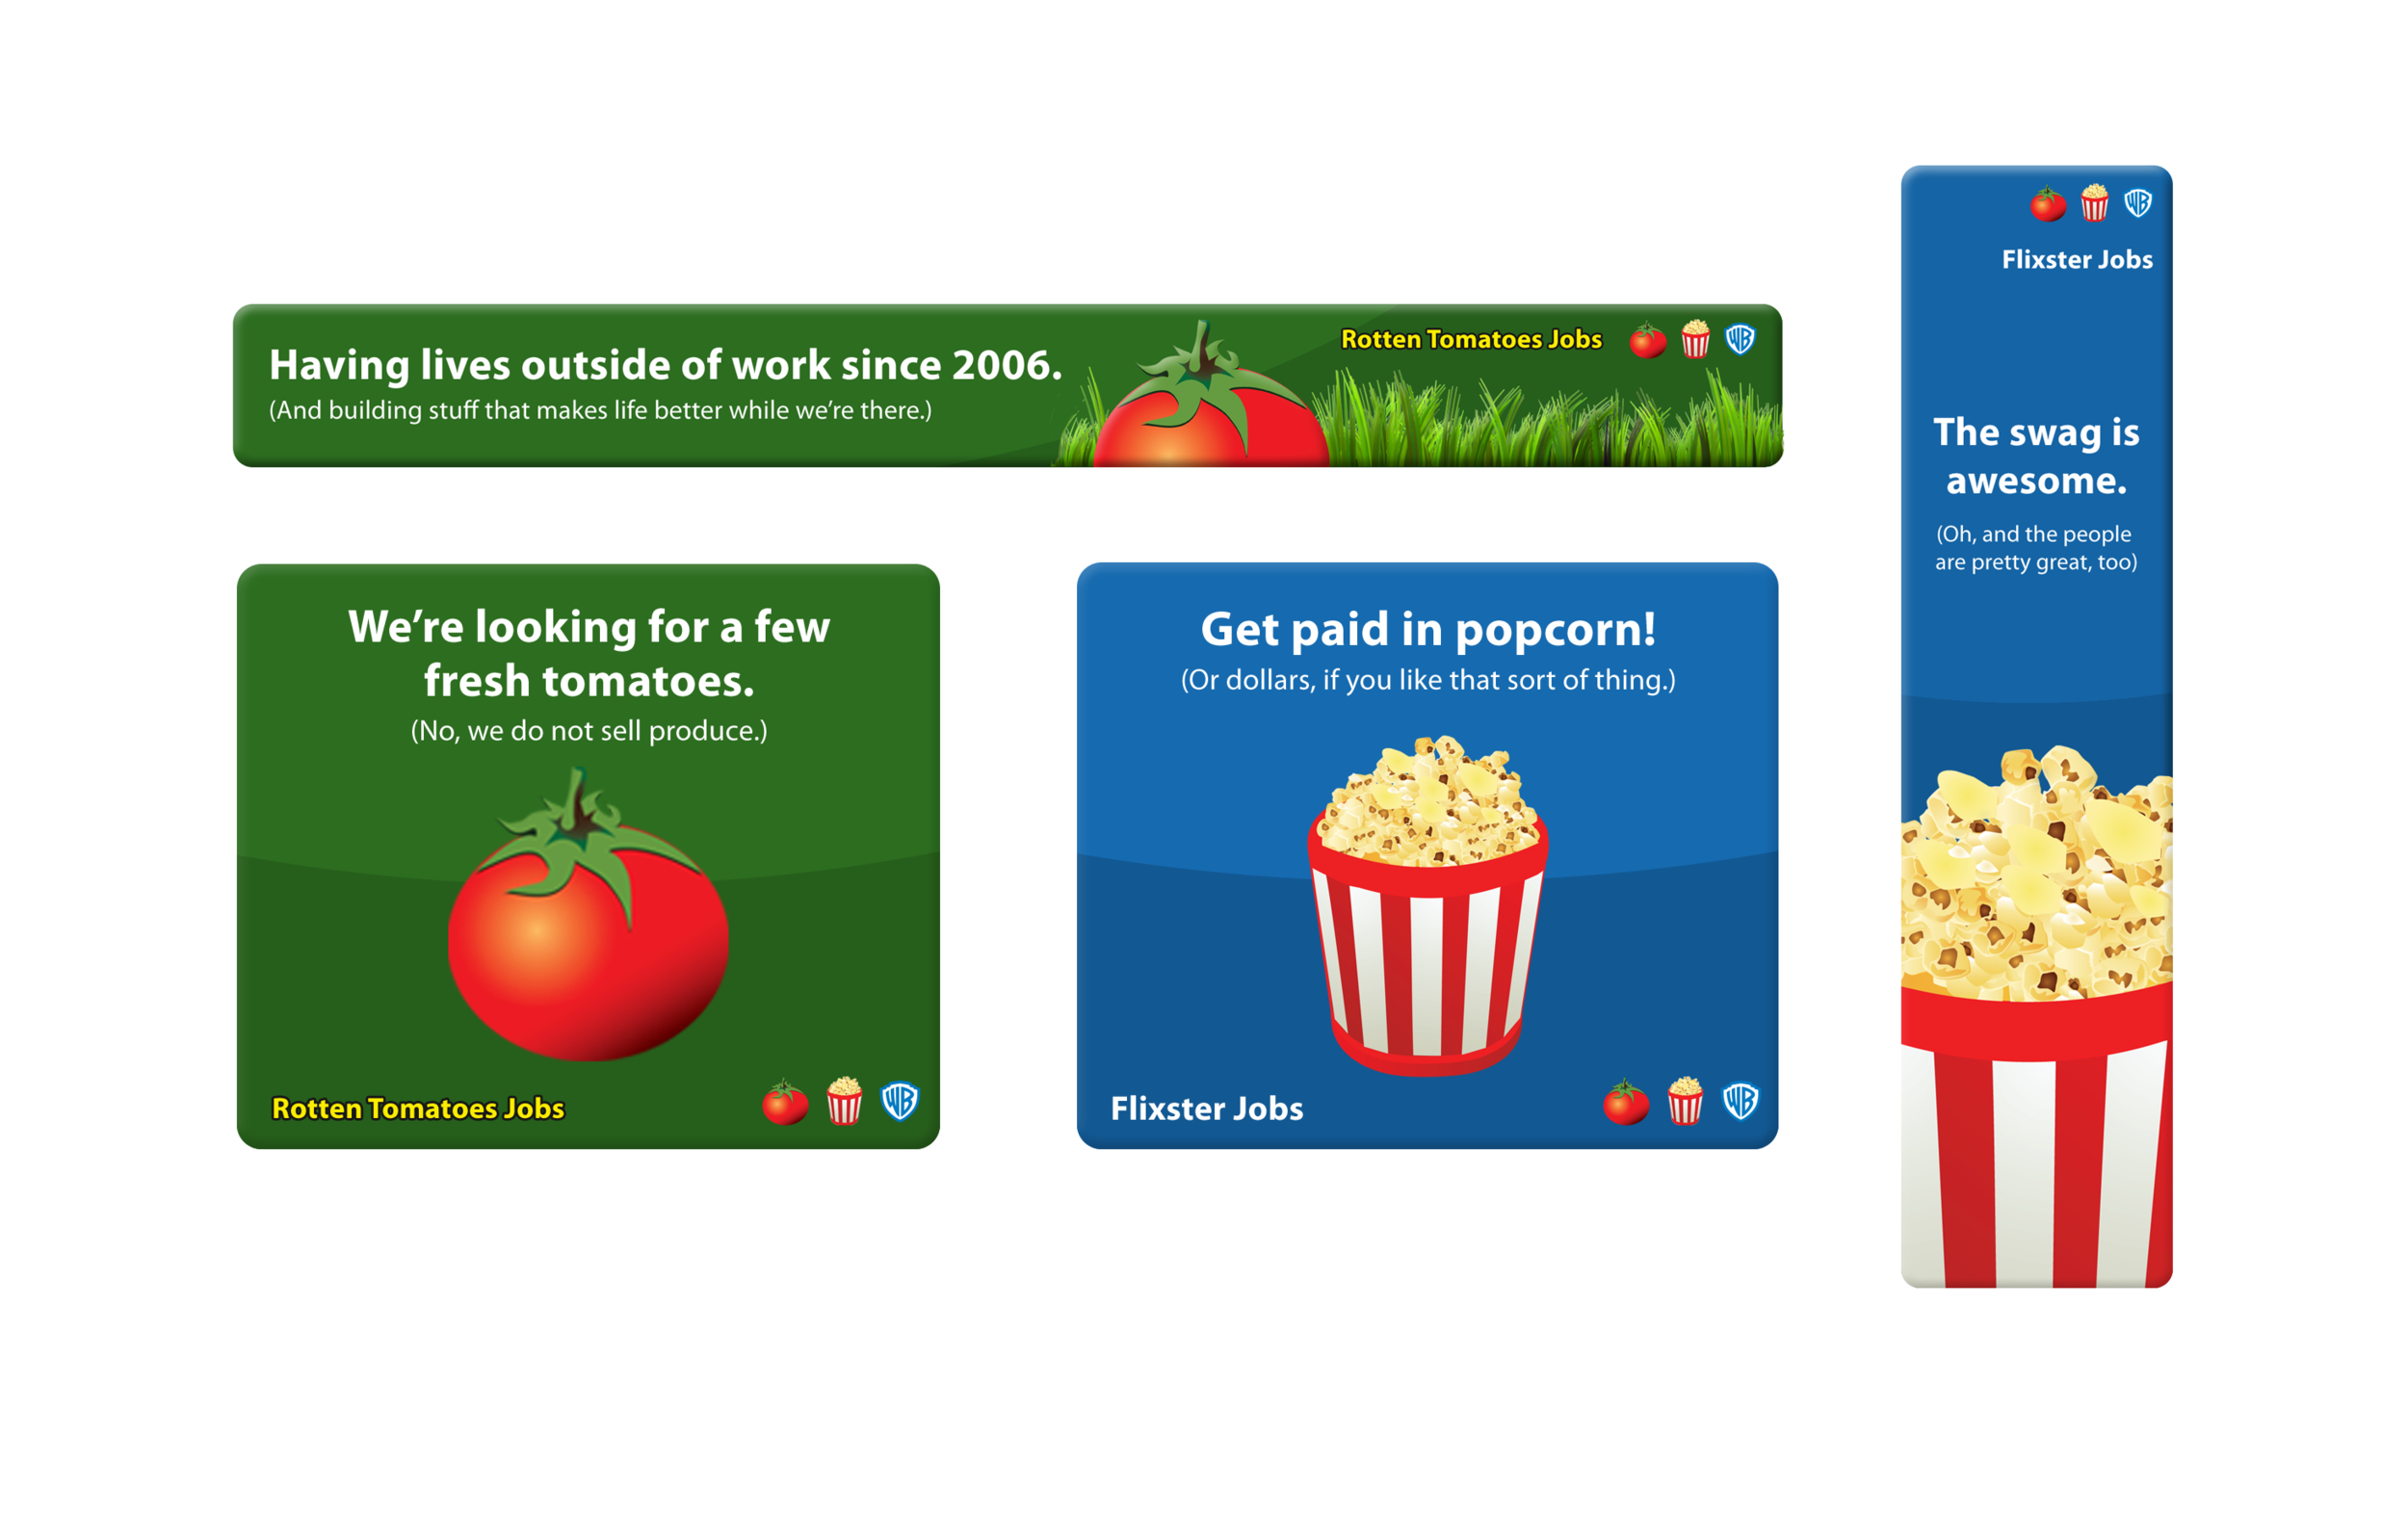 Flixster and Rotten Tomatoes recruiting ads - Designed for standard web banner sizes as well as printable cards. (2013)